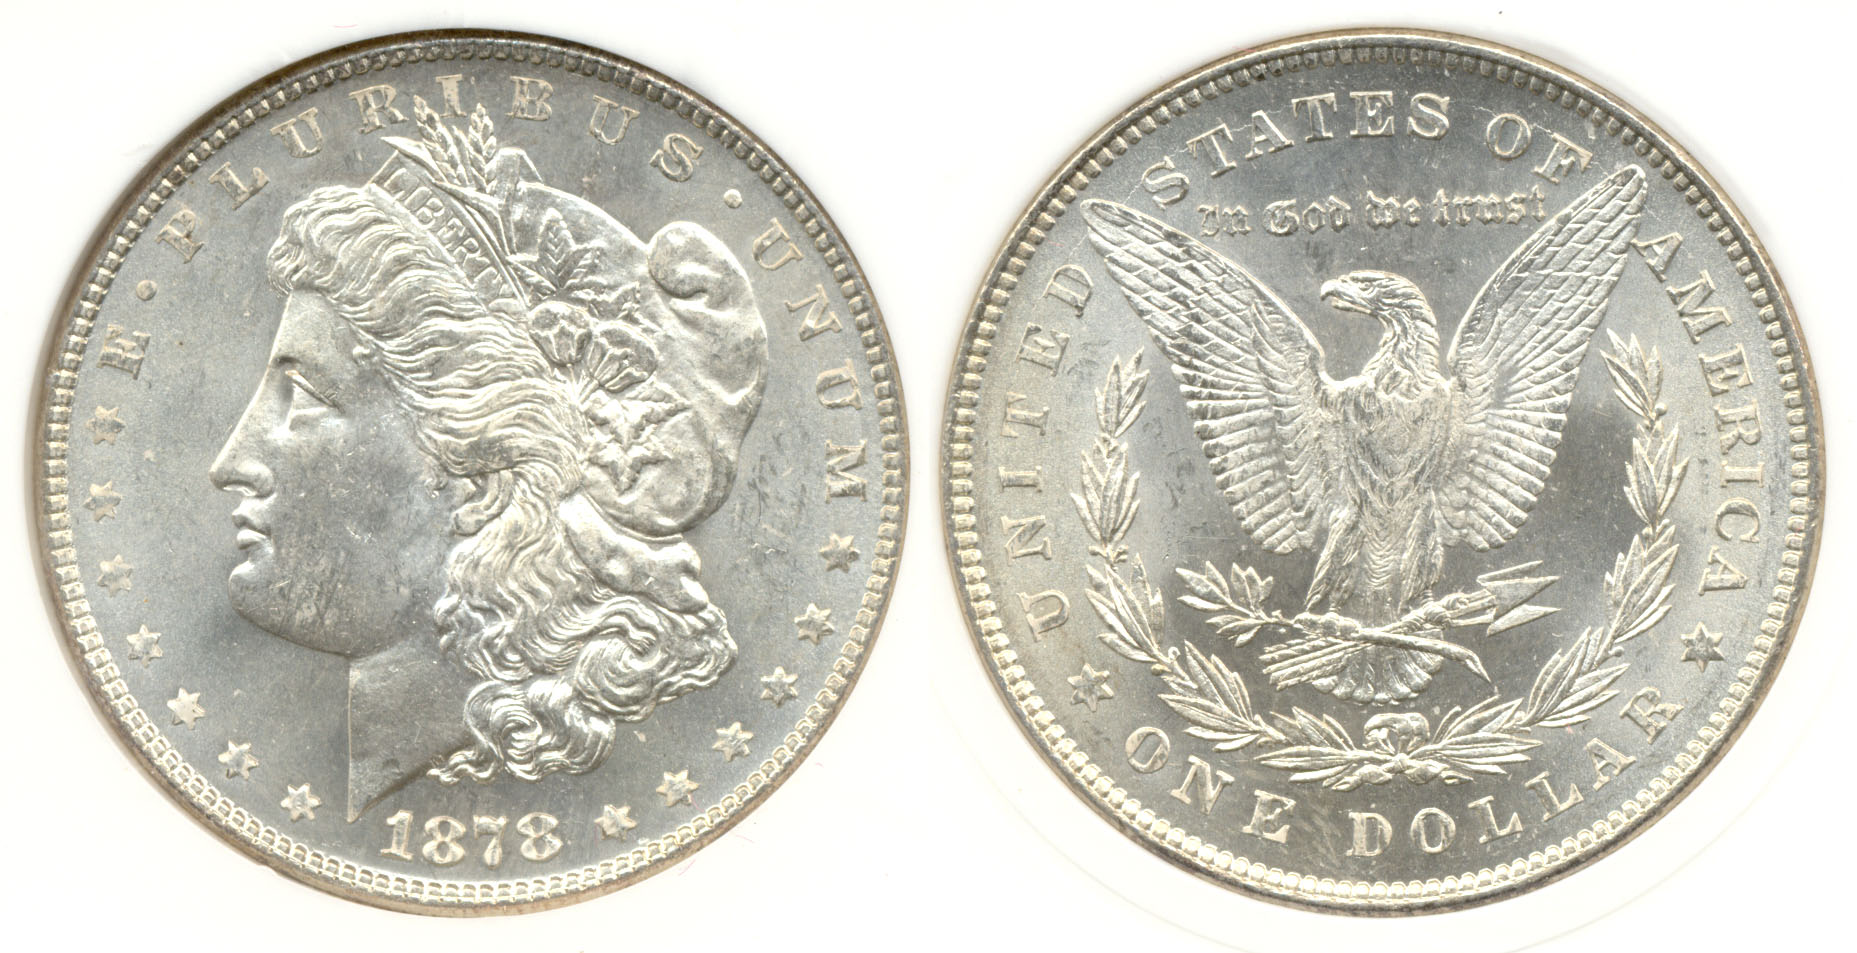 1878 7 over 8 Tail Feathers Morgan Dollar PCI MS-64